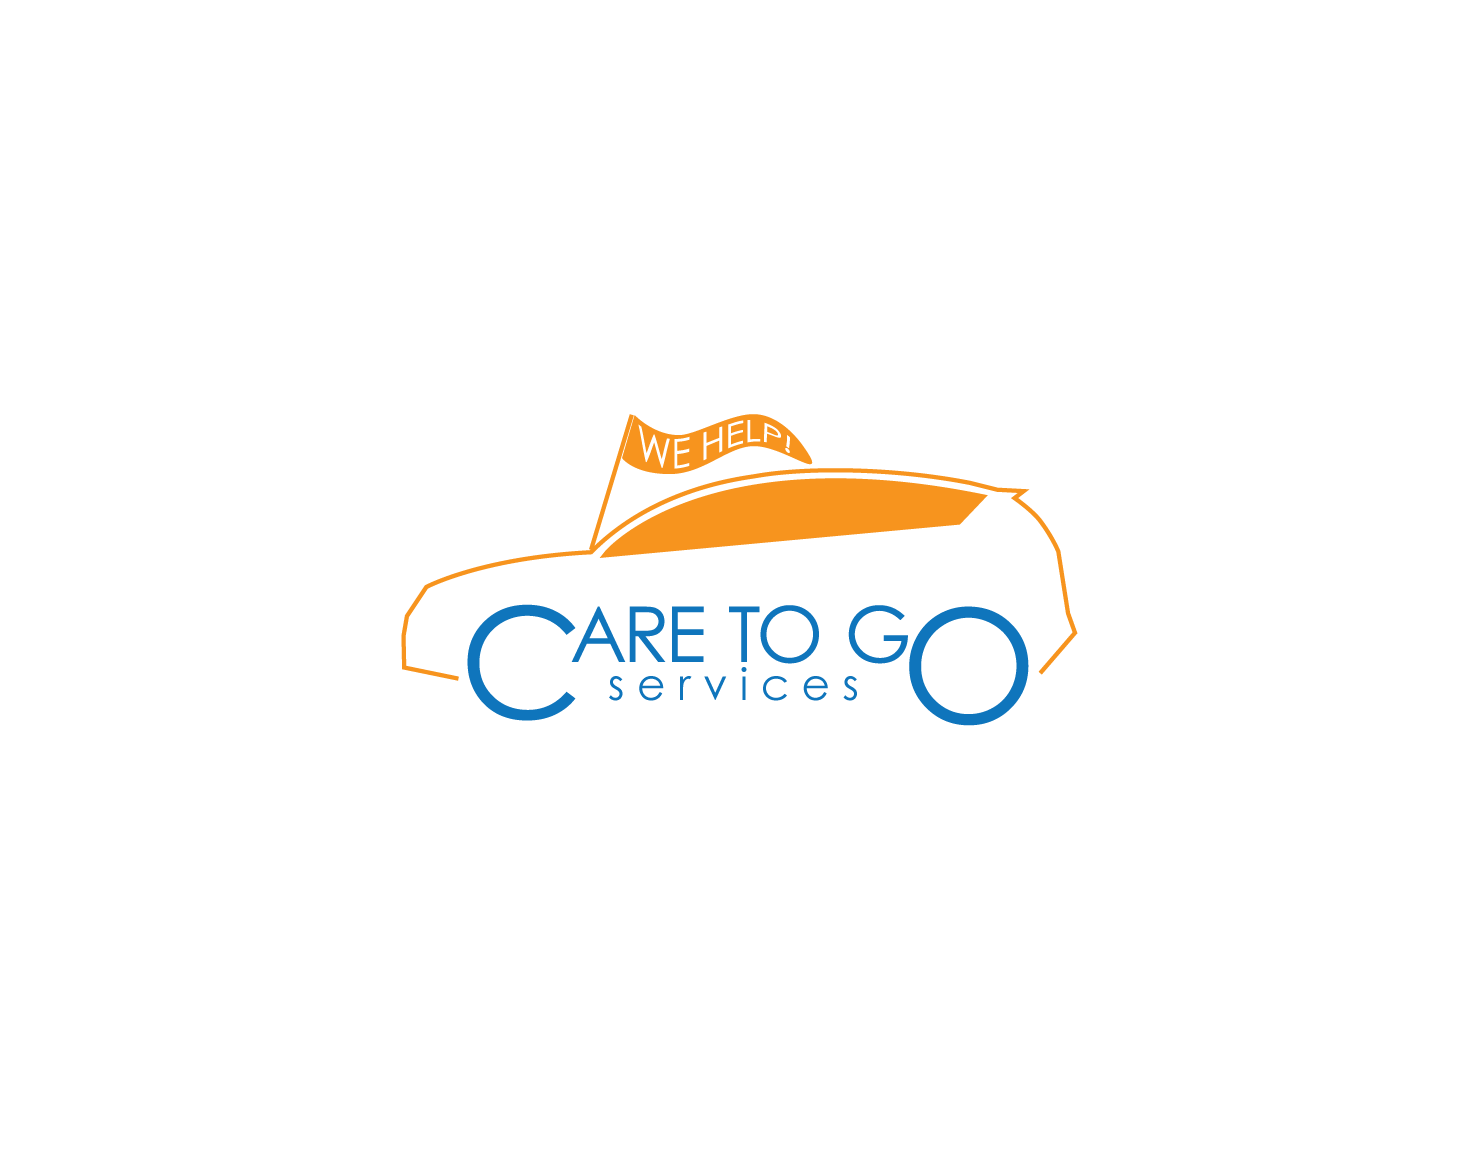 Logo Design by Roy Ferre - Entry No. 270 in the Logo Design Contest Care To Go Services.